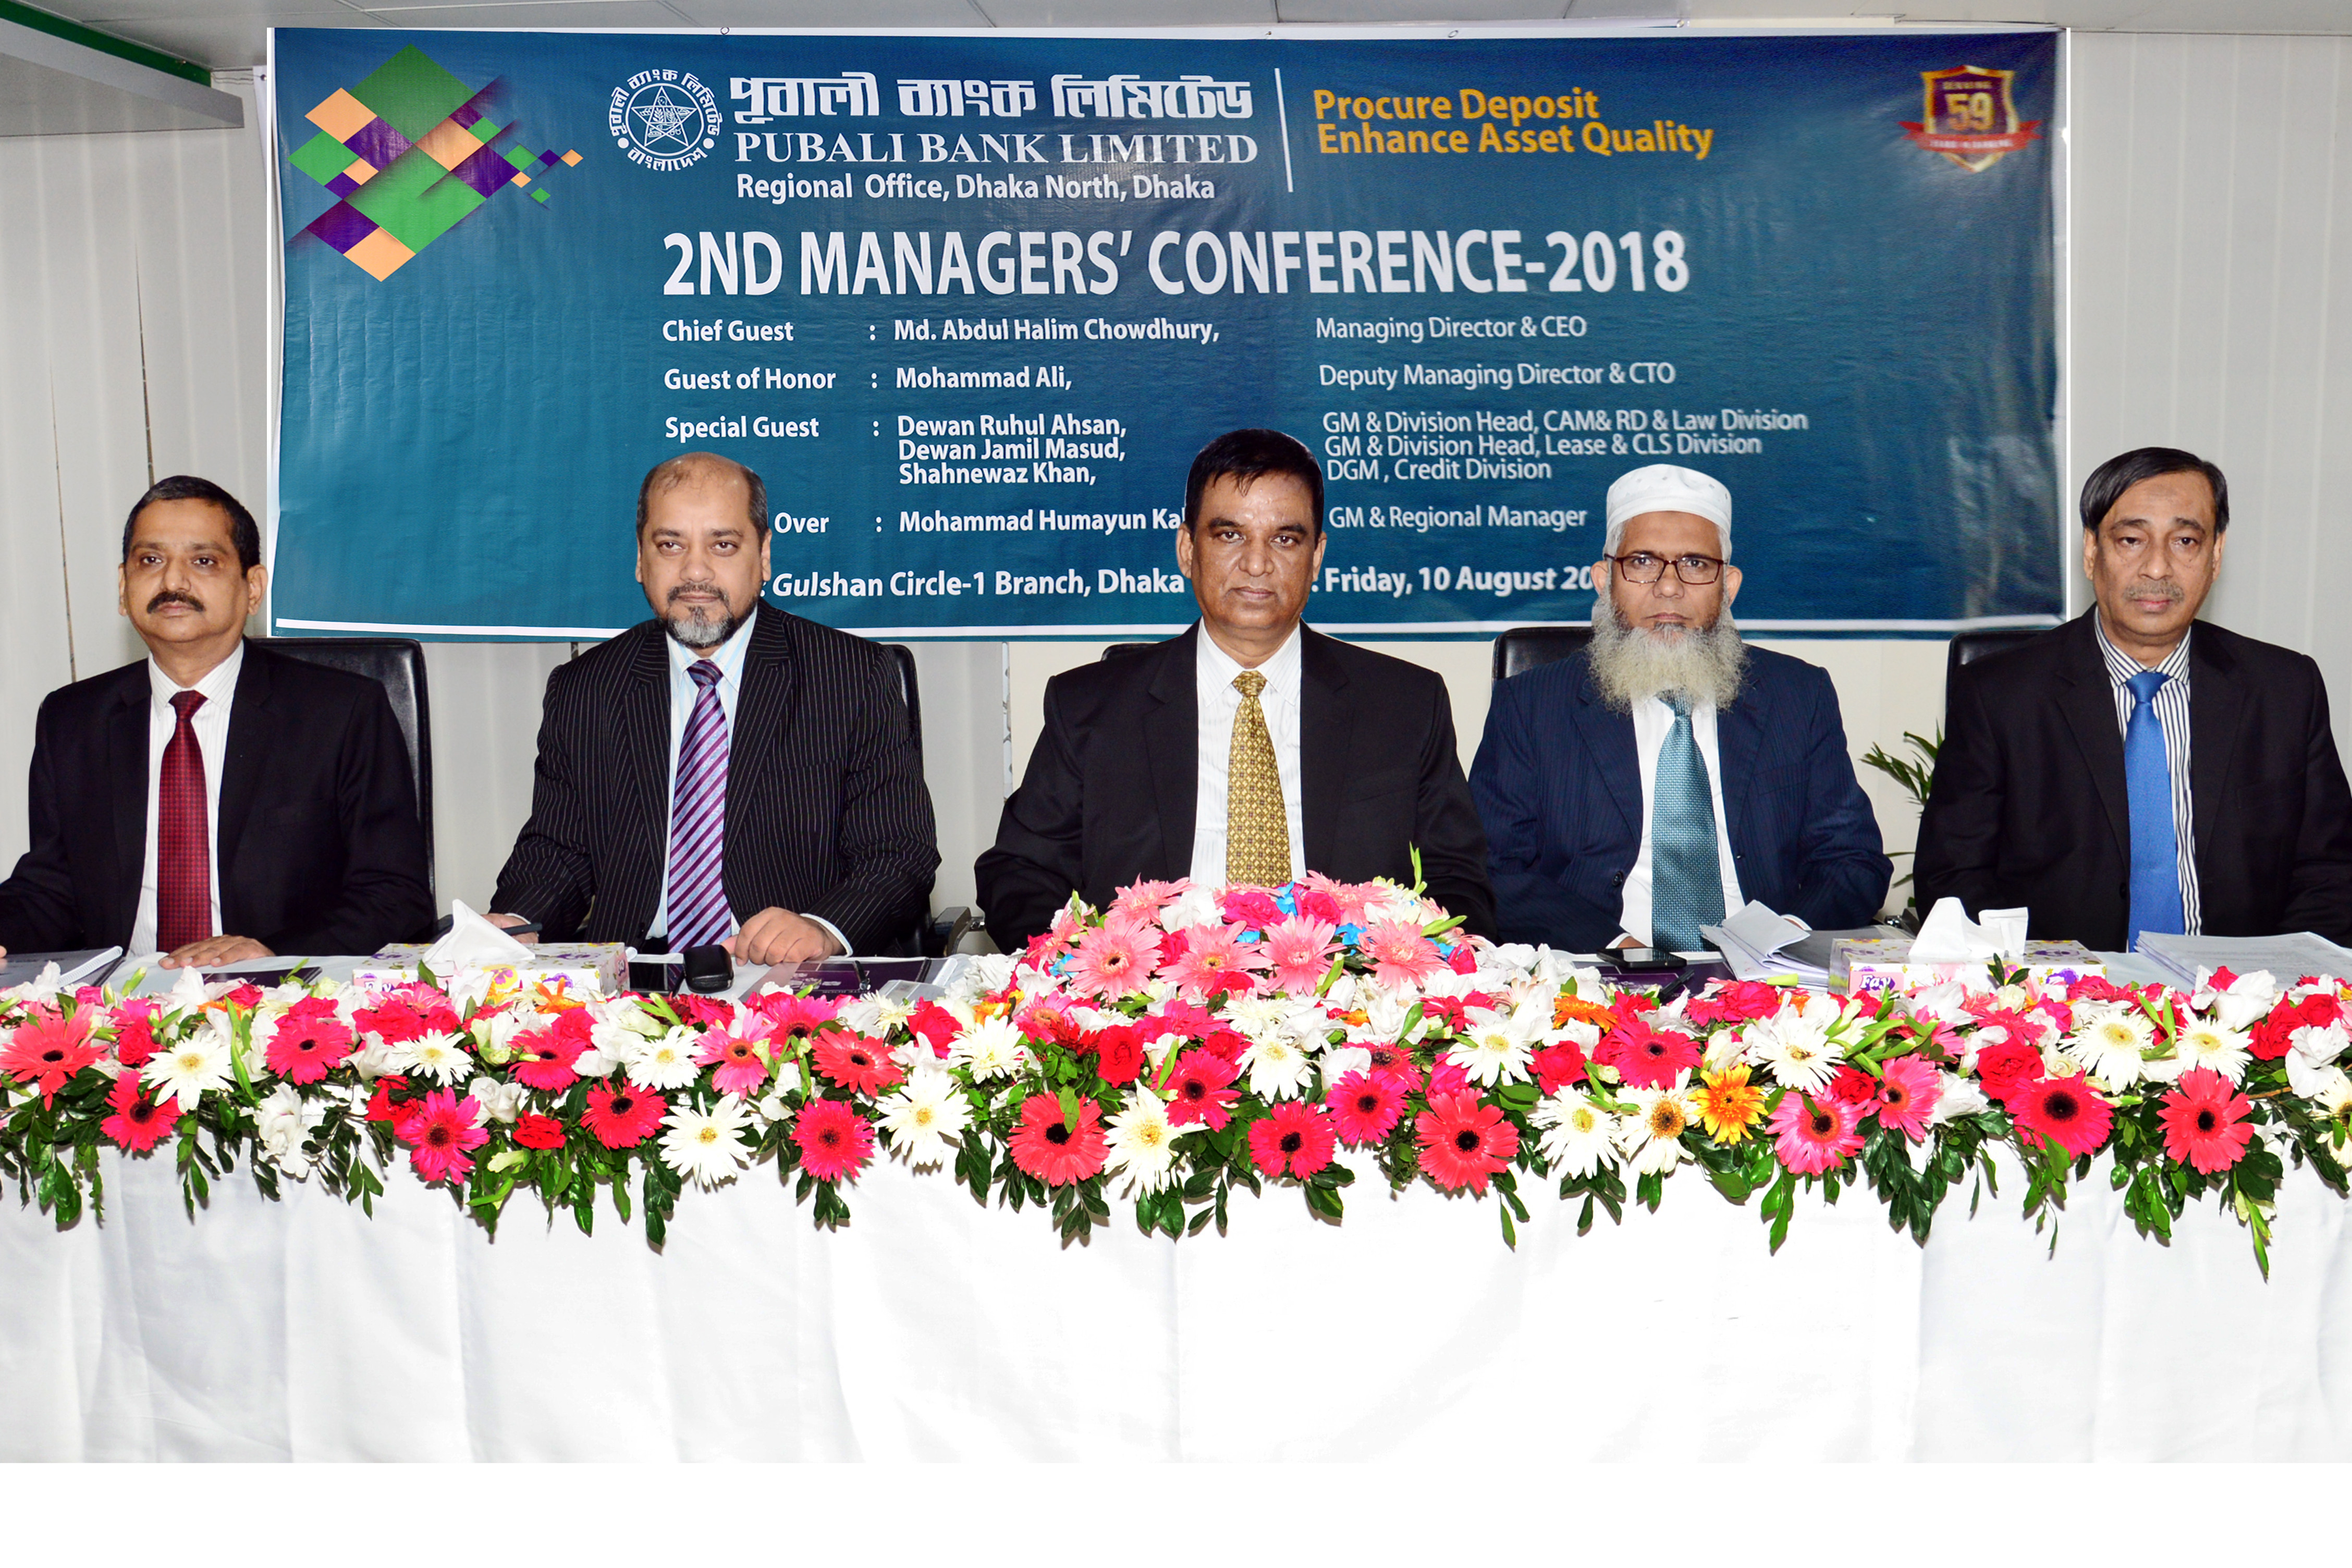 2nd Managers conference 2018 of Dhaka North of Pubali Bank Limited was held recently Md Abdul Halim Chowdhury Managing Director & CEO graced the